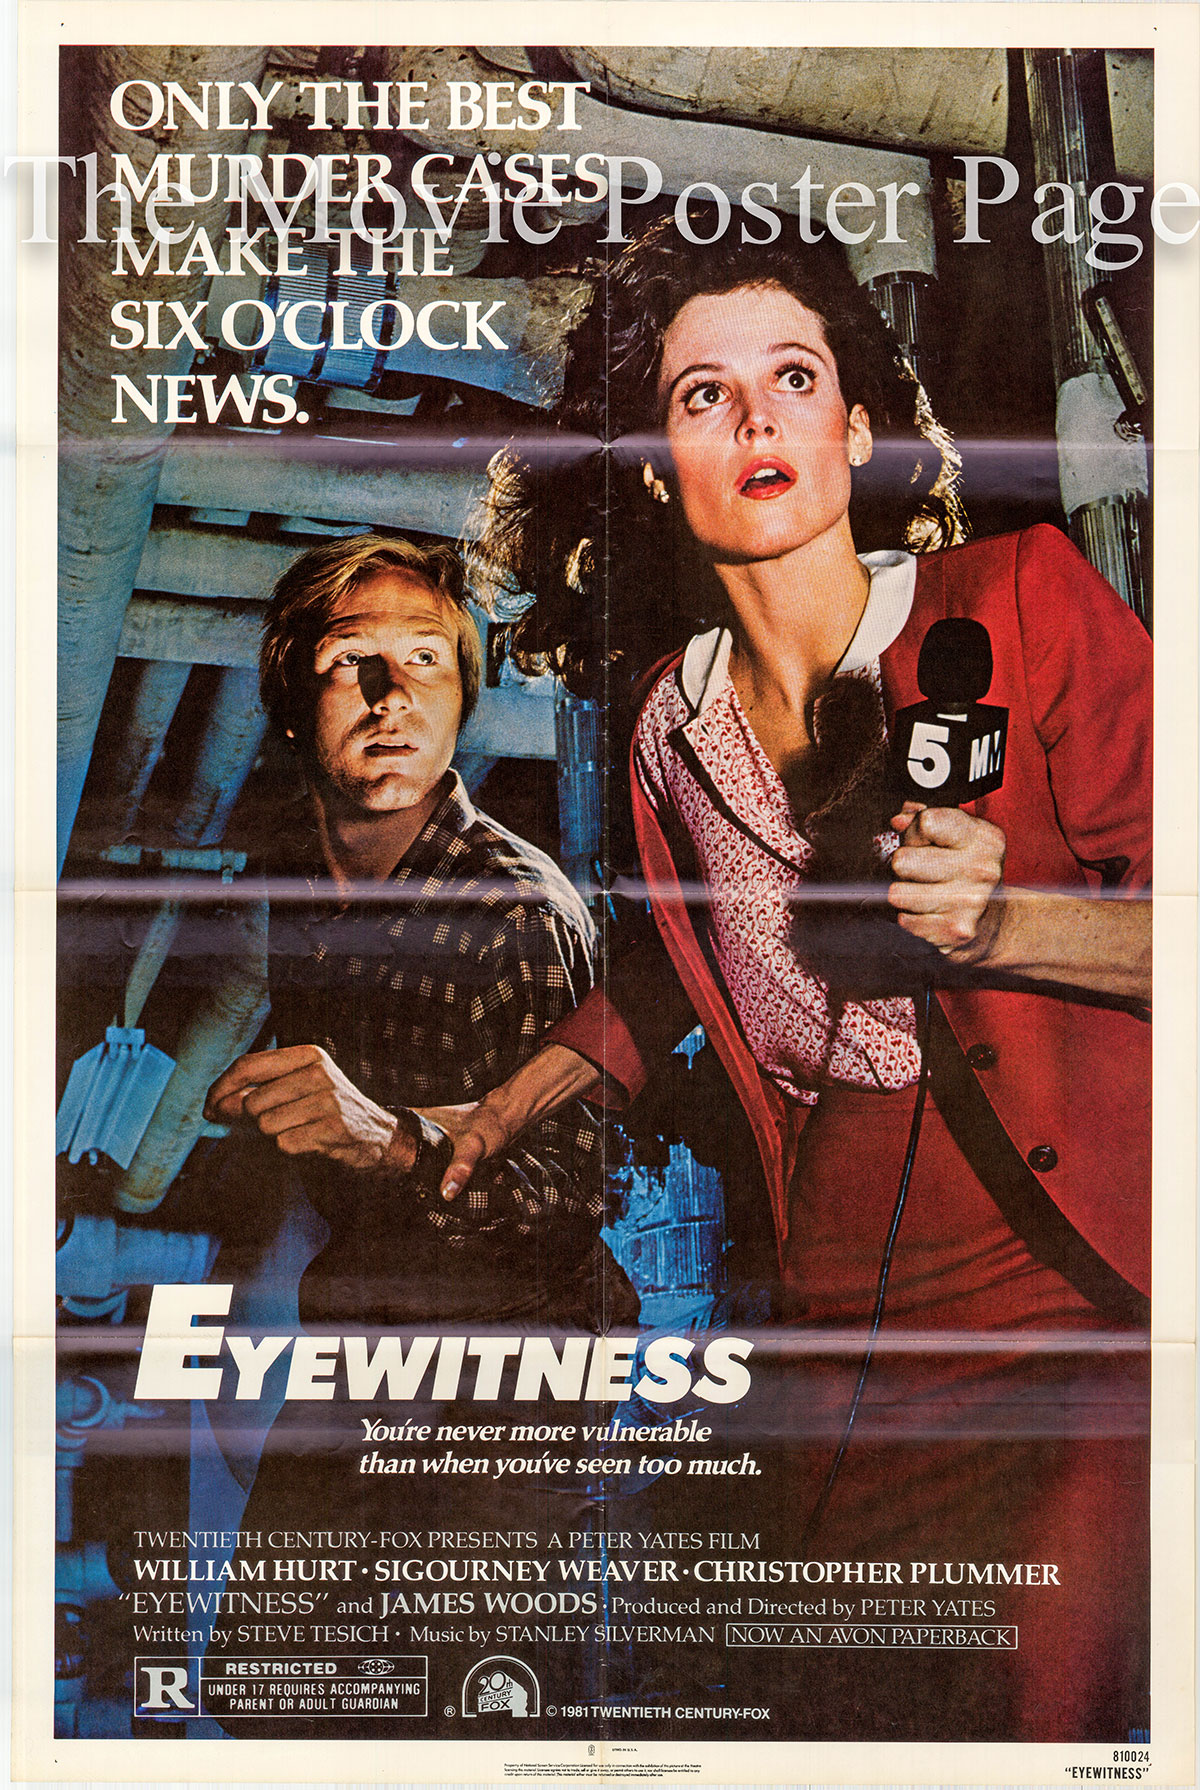 Pictured is a US promotional one-sheet poster for the 1981 Peter Yates film Eyewitness starring William Hurt as Daryll Deever.